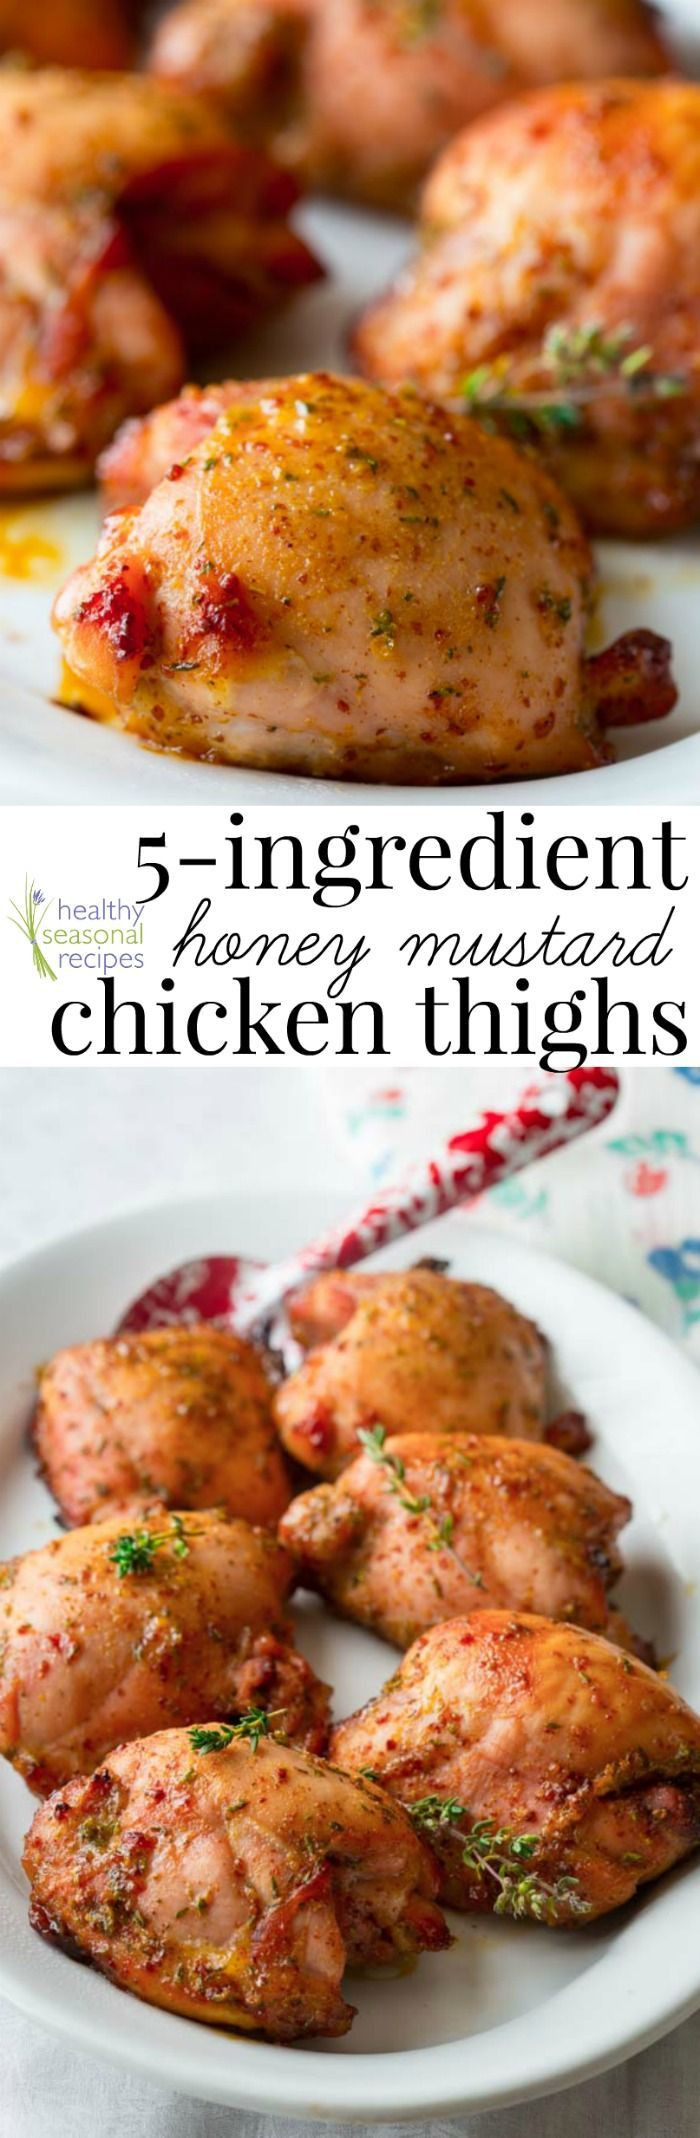 Healthy Baked Chicken Thigh Recipes  100 Healthy Chicken Thigh Recipes on Pinterest